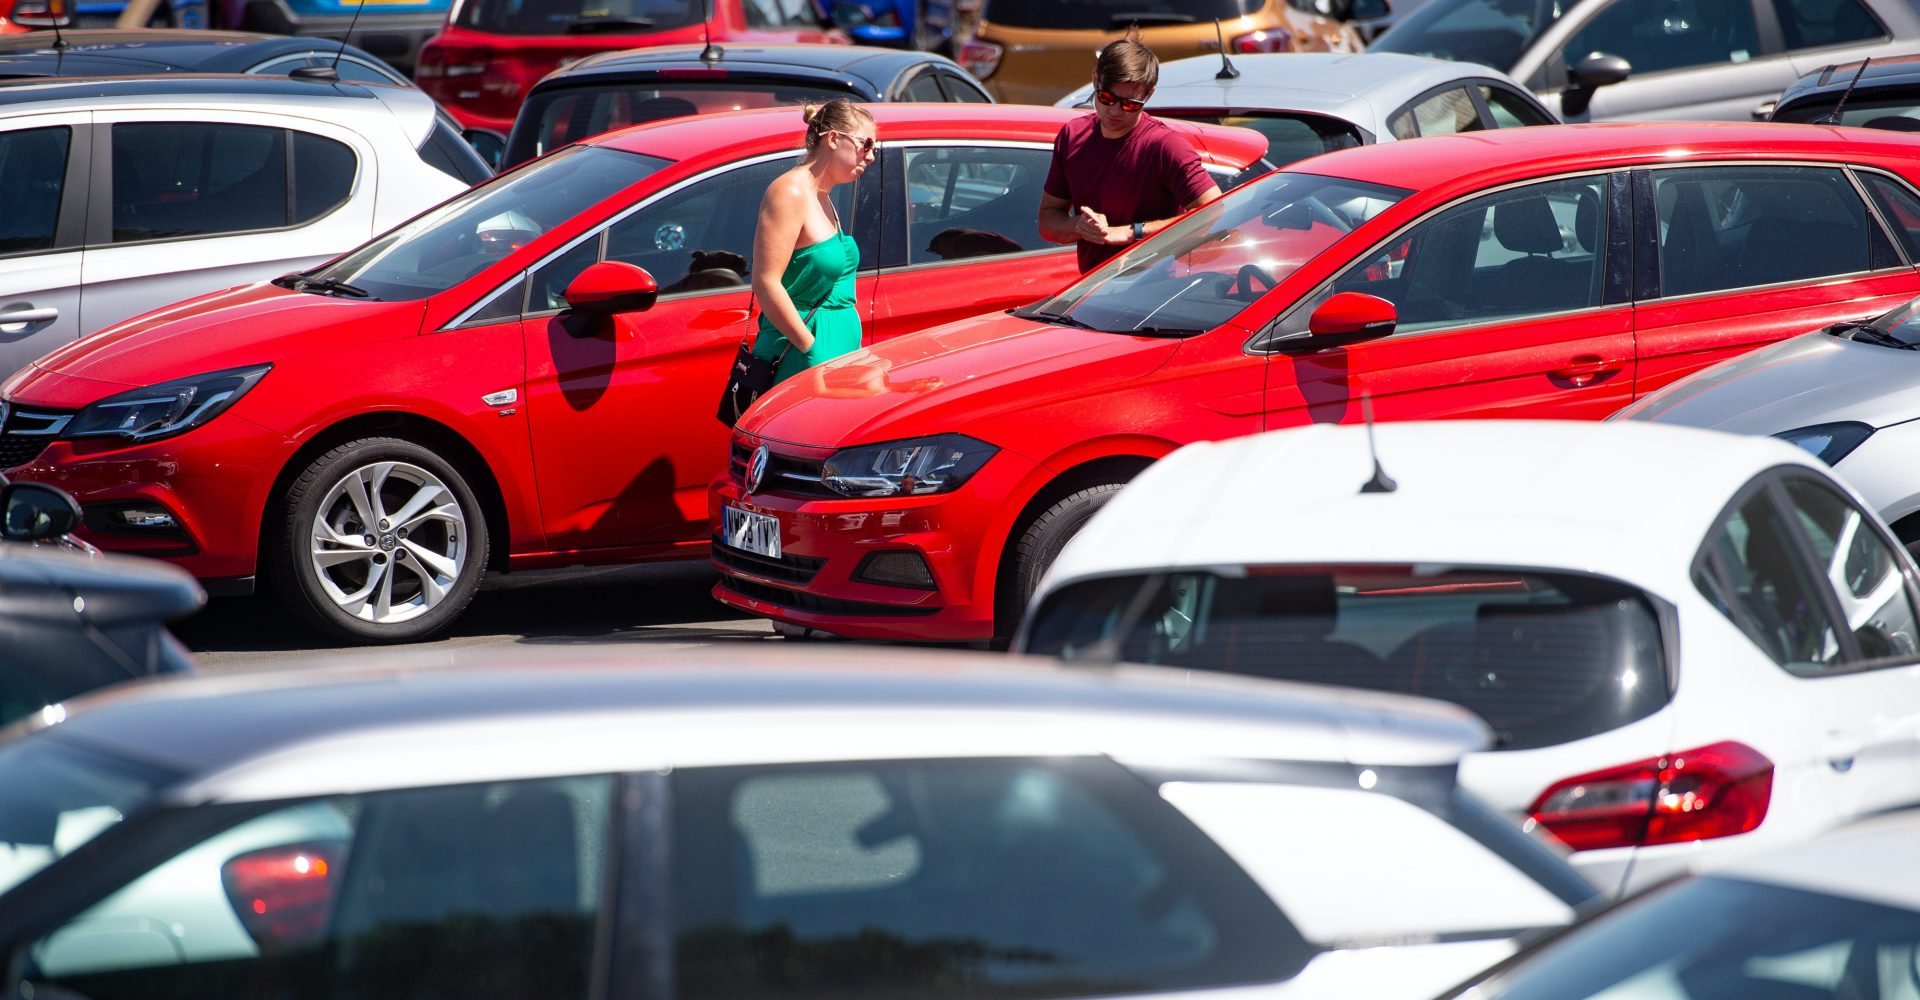 Women account for half of all sales for first time ever, reports online car marketplace